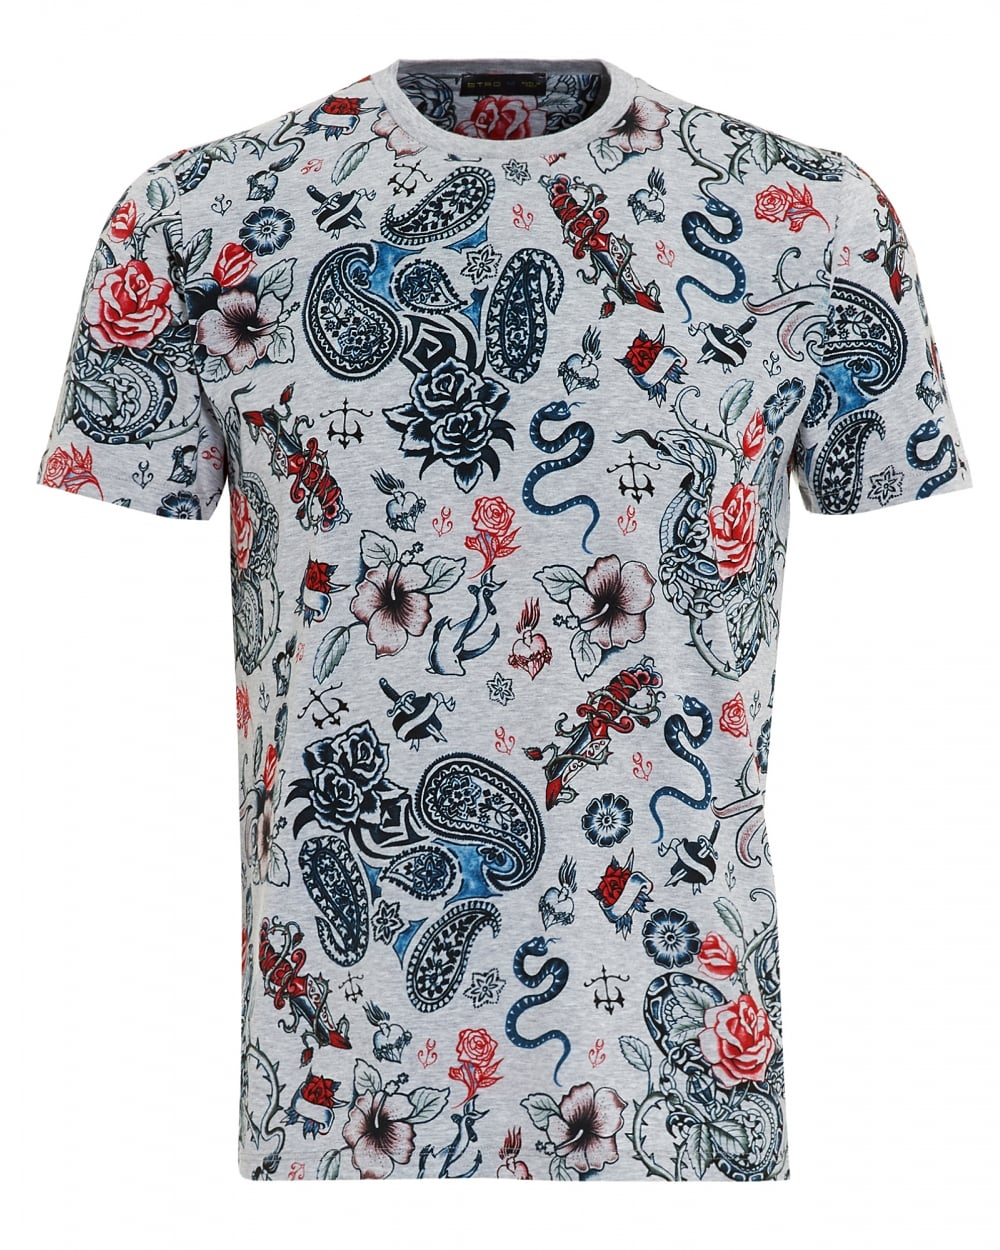 Discover the range of men's printed shirts with ASOS. Shop from hundreds of different styles, from men's chequered shirts to casual shirts. Shop at ASOS.